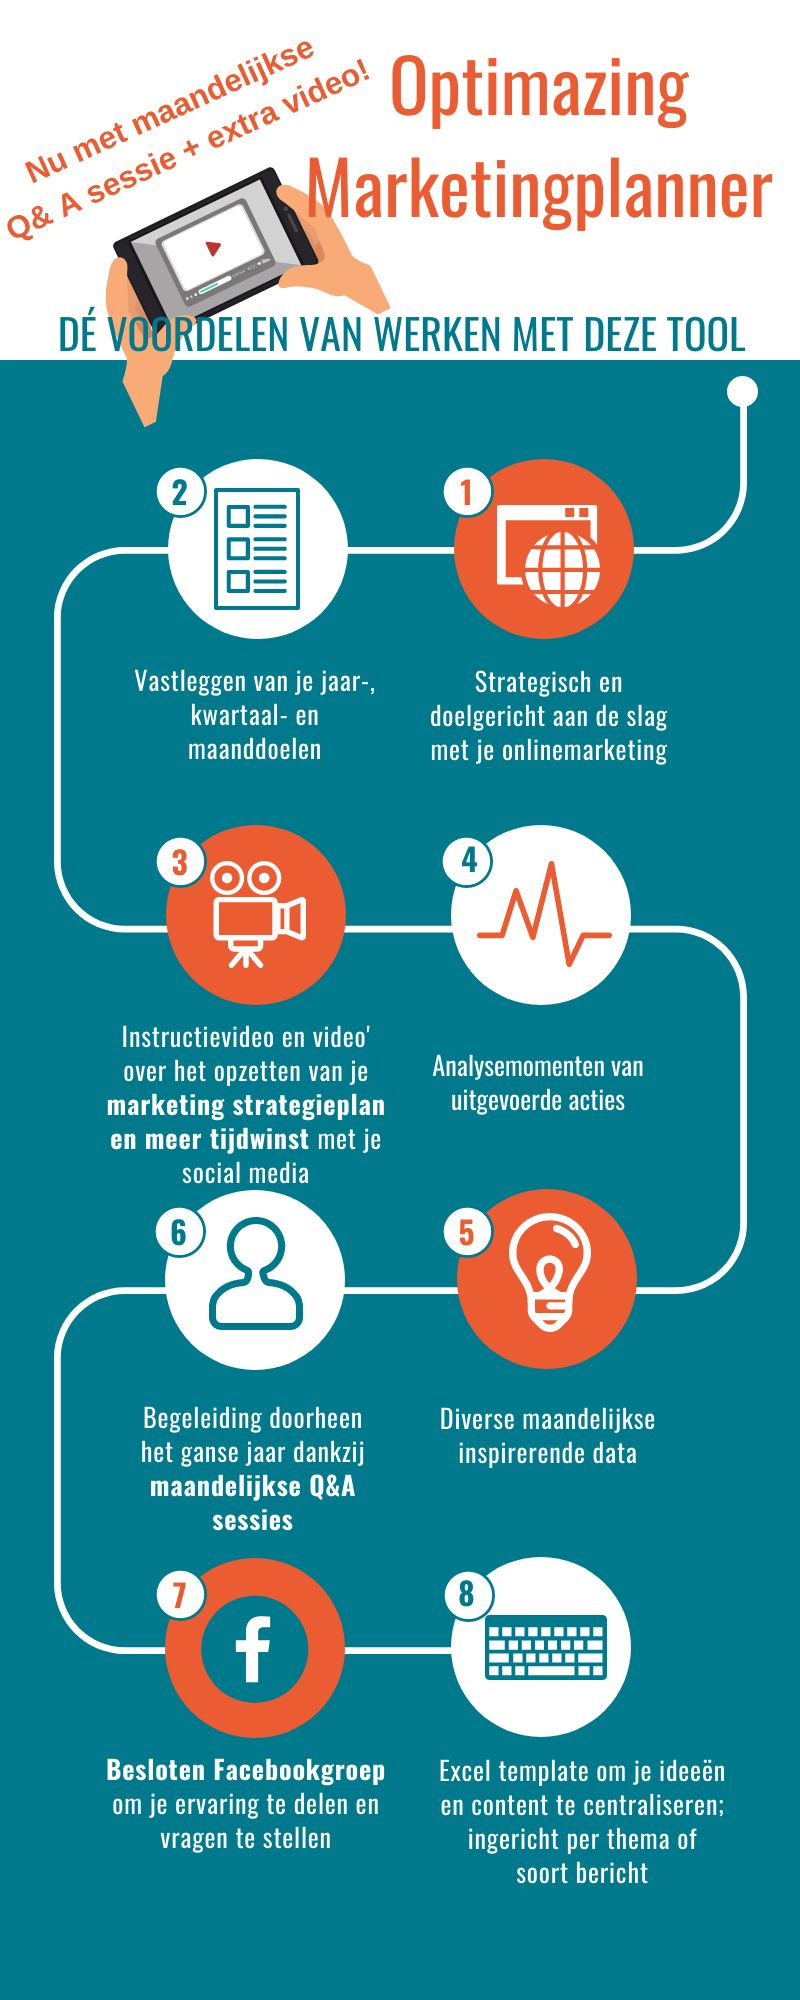 Marketingplanner 2021 infographic: Q&A sessies en extra video